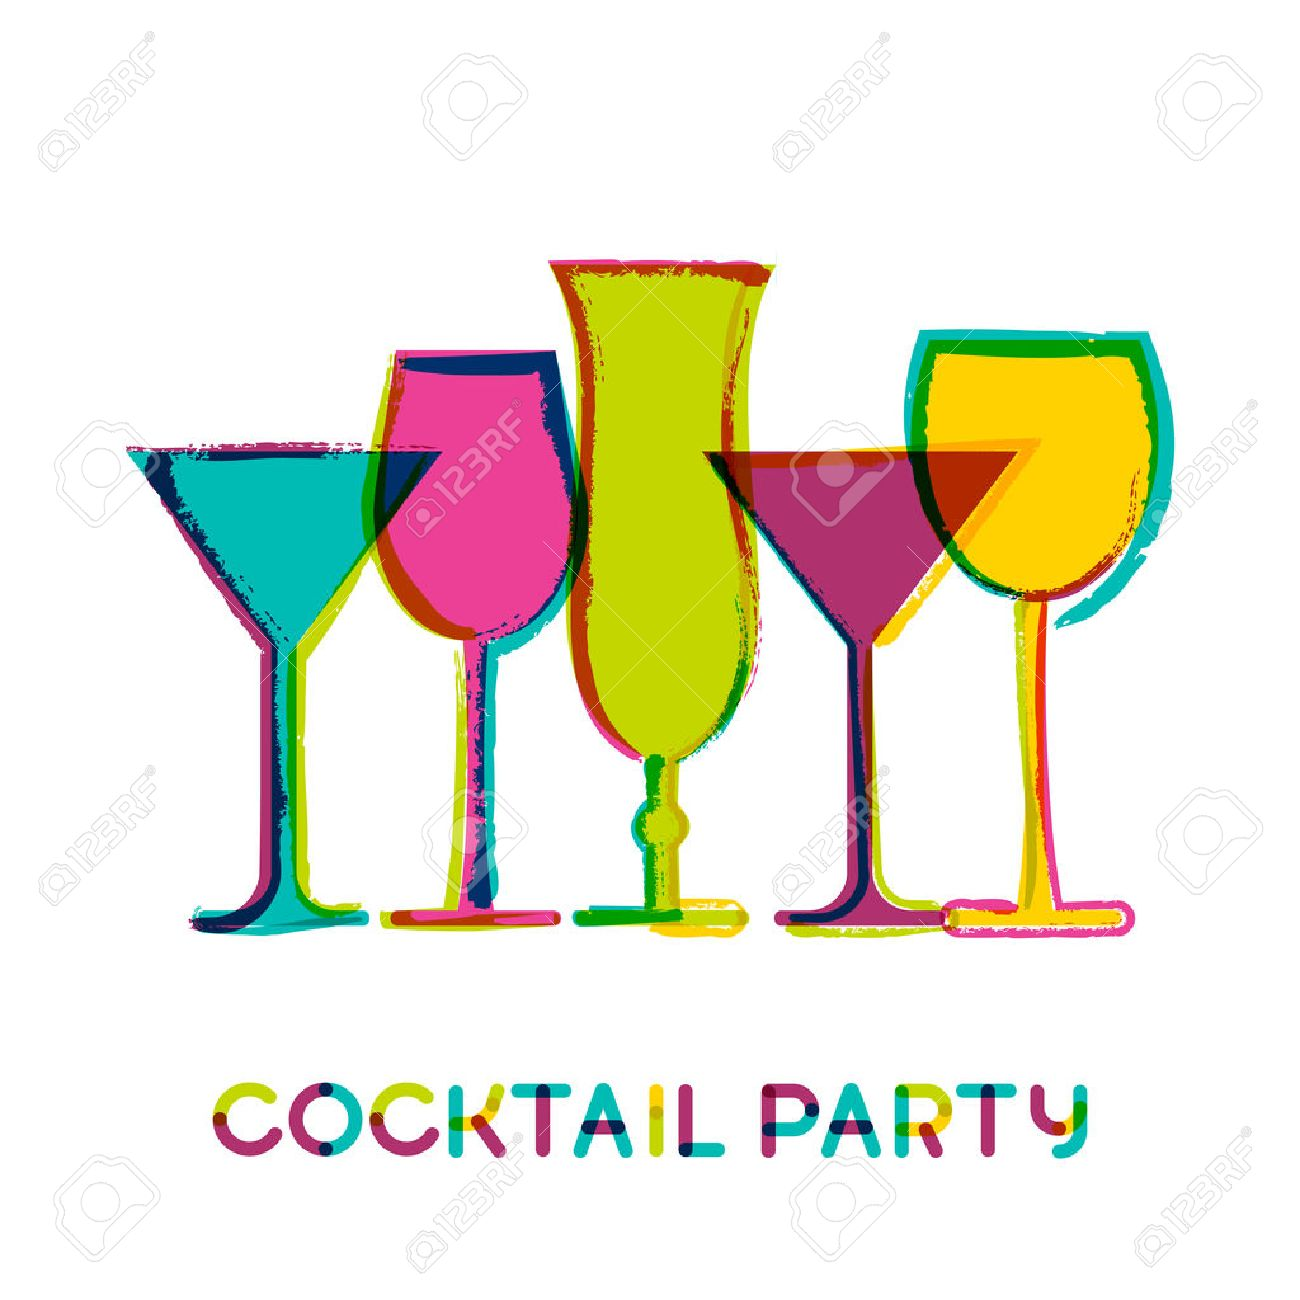 Cocktail party clipart 8 » Clipart Station.